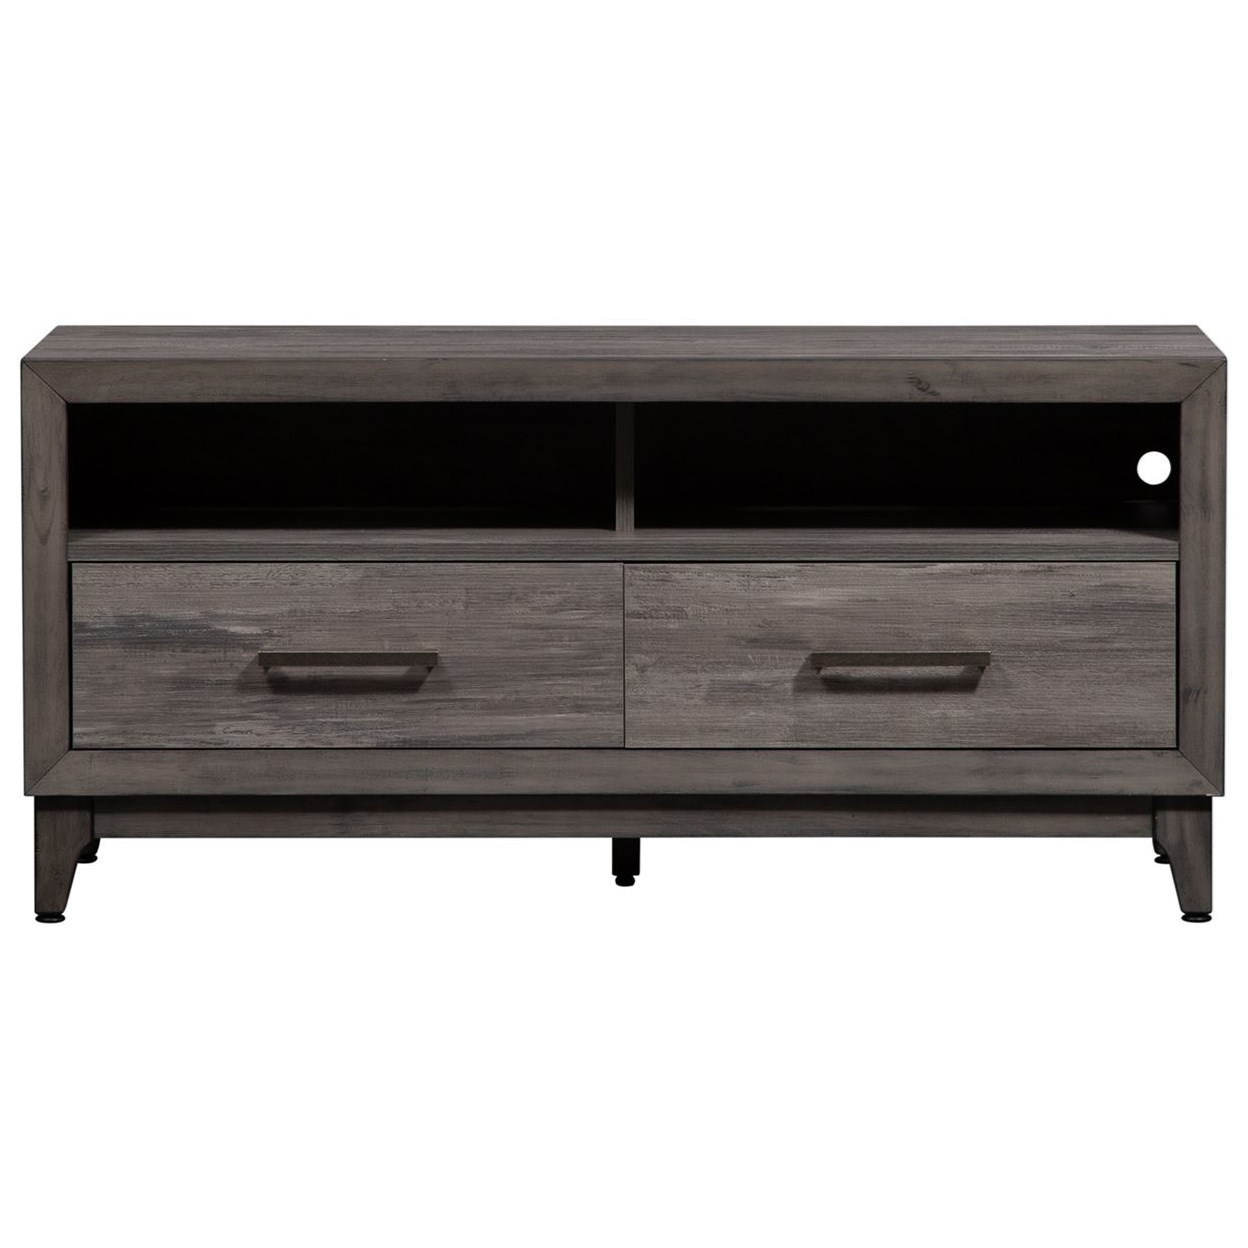 Mercury 47 Inch TV Console by Libby at Walker's Furniture